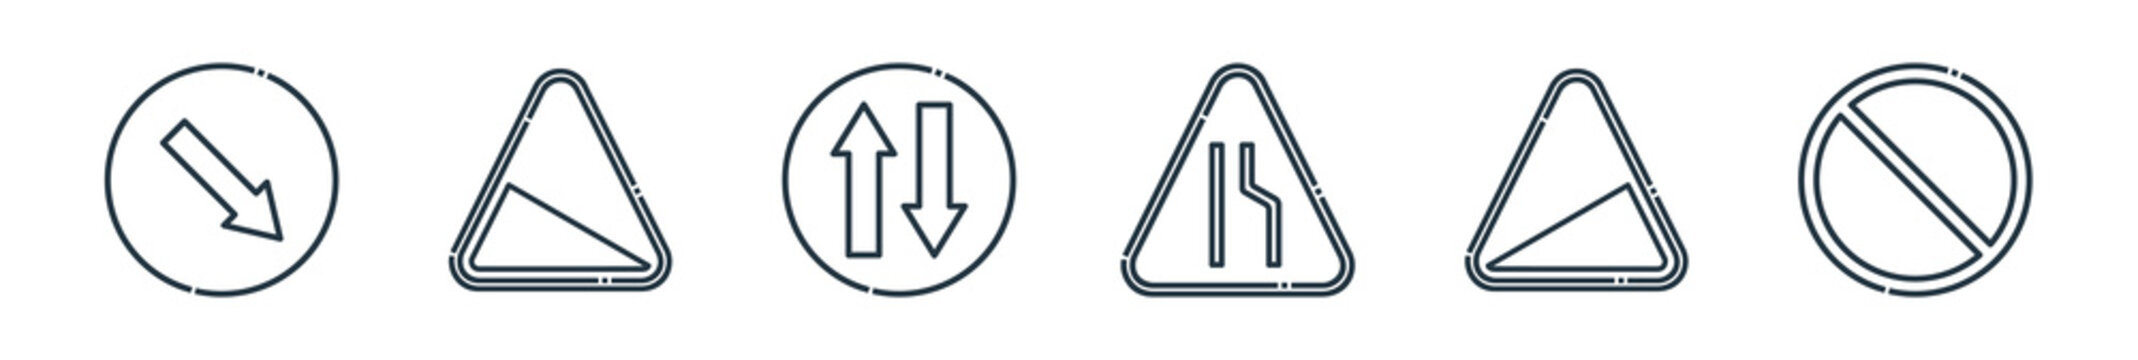 outline set of signaling line icons. linear vector icons such as keep right, slope, two way, narrow road, slope, no waiting. vector illustration.